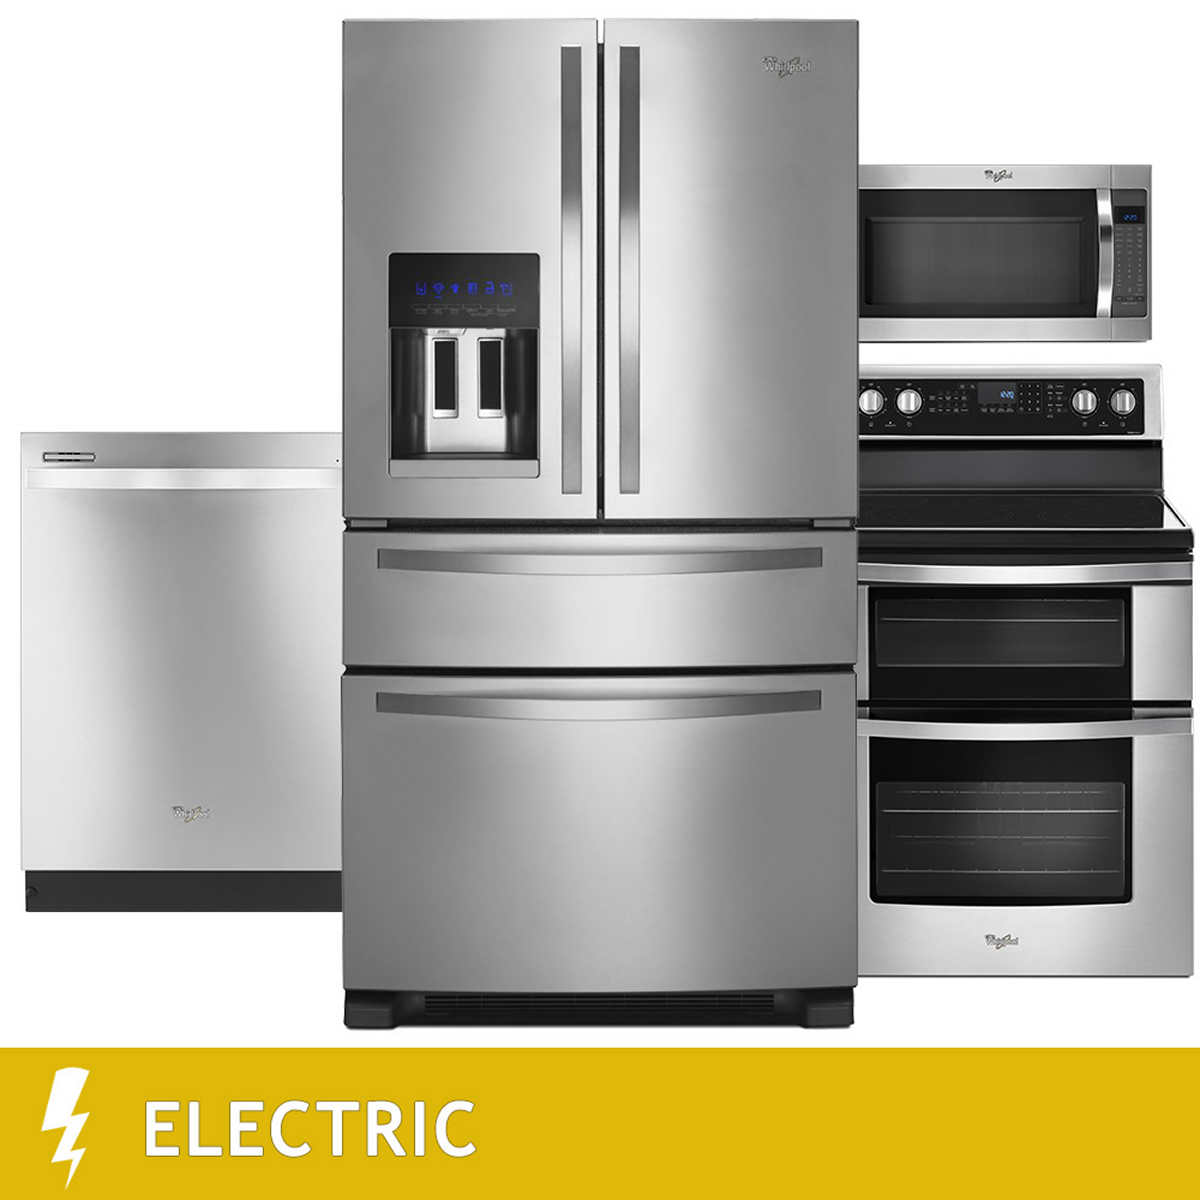 Whirlpool white ice costco - Whirlpool 4 Piece Electric 25cuft 4 Door French Door Kitchen Suite In Stainless